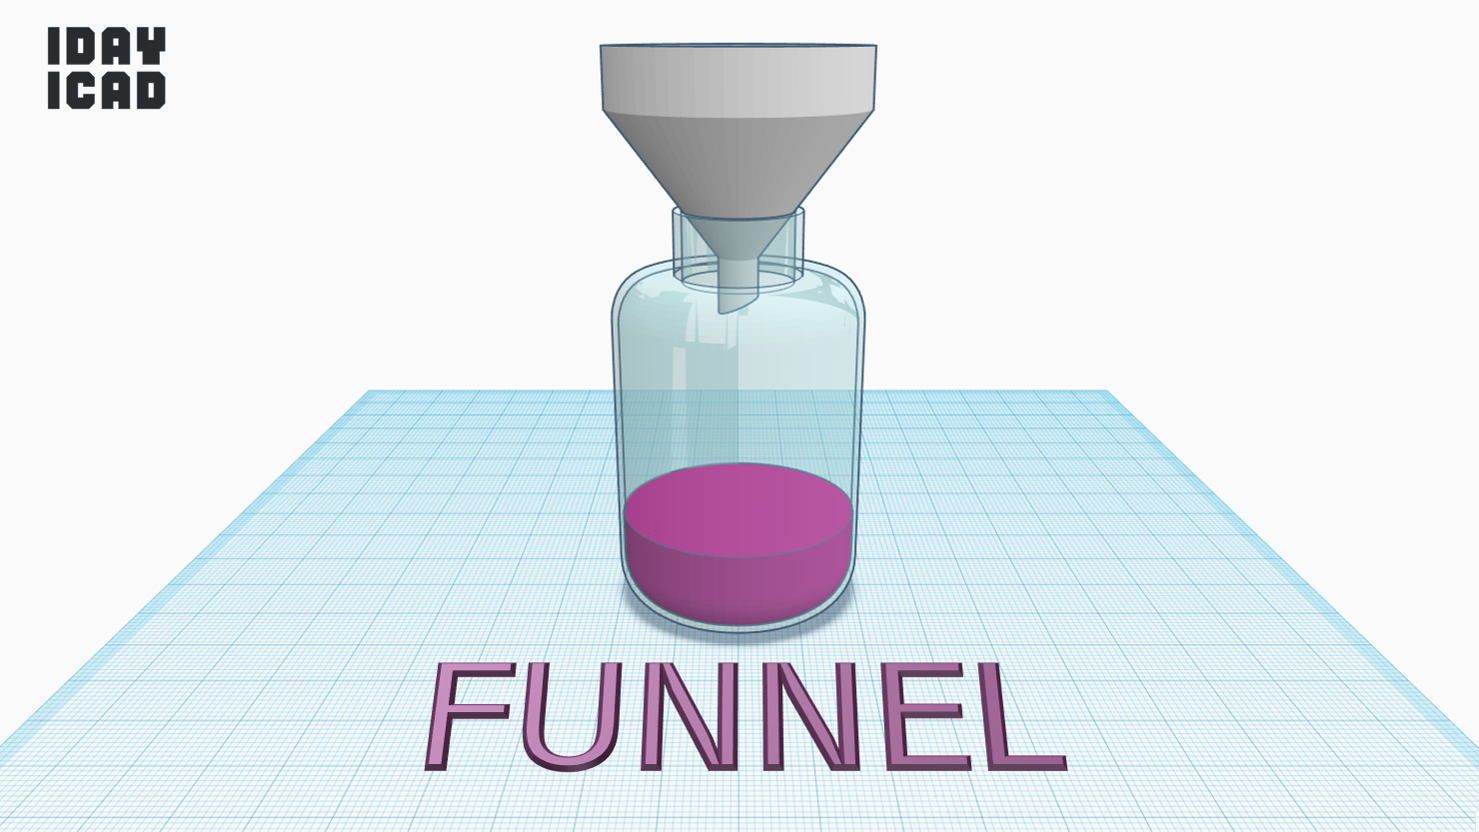 [1DAY_1CAD] FUNNEL